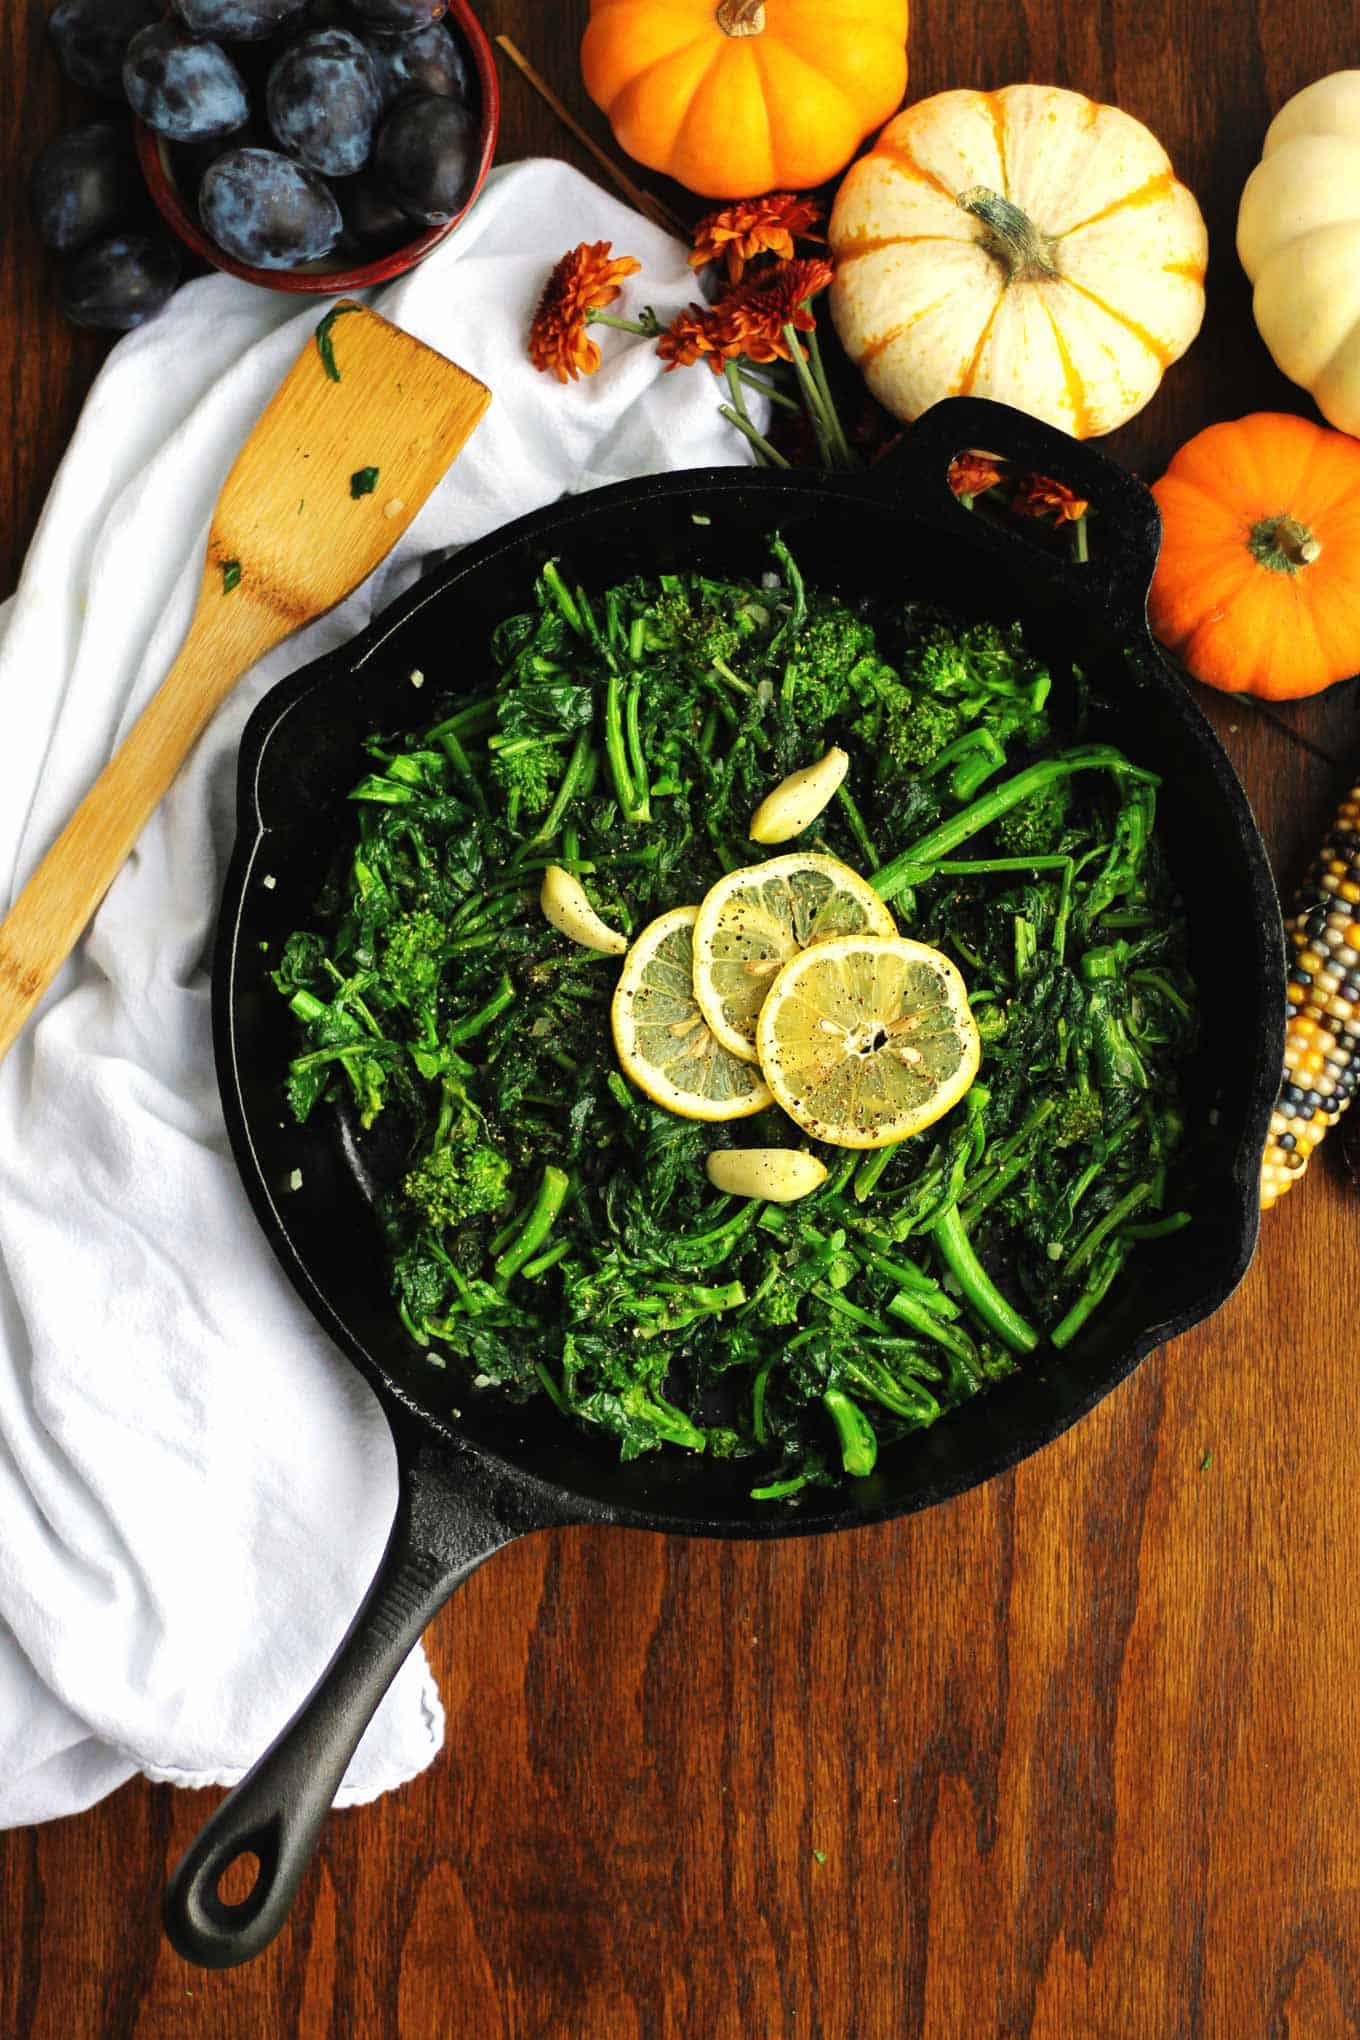 sauteed broccoli rabe and kale in a black skillet with lemon